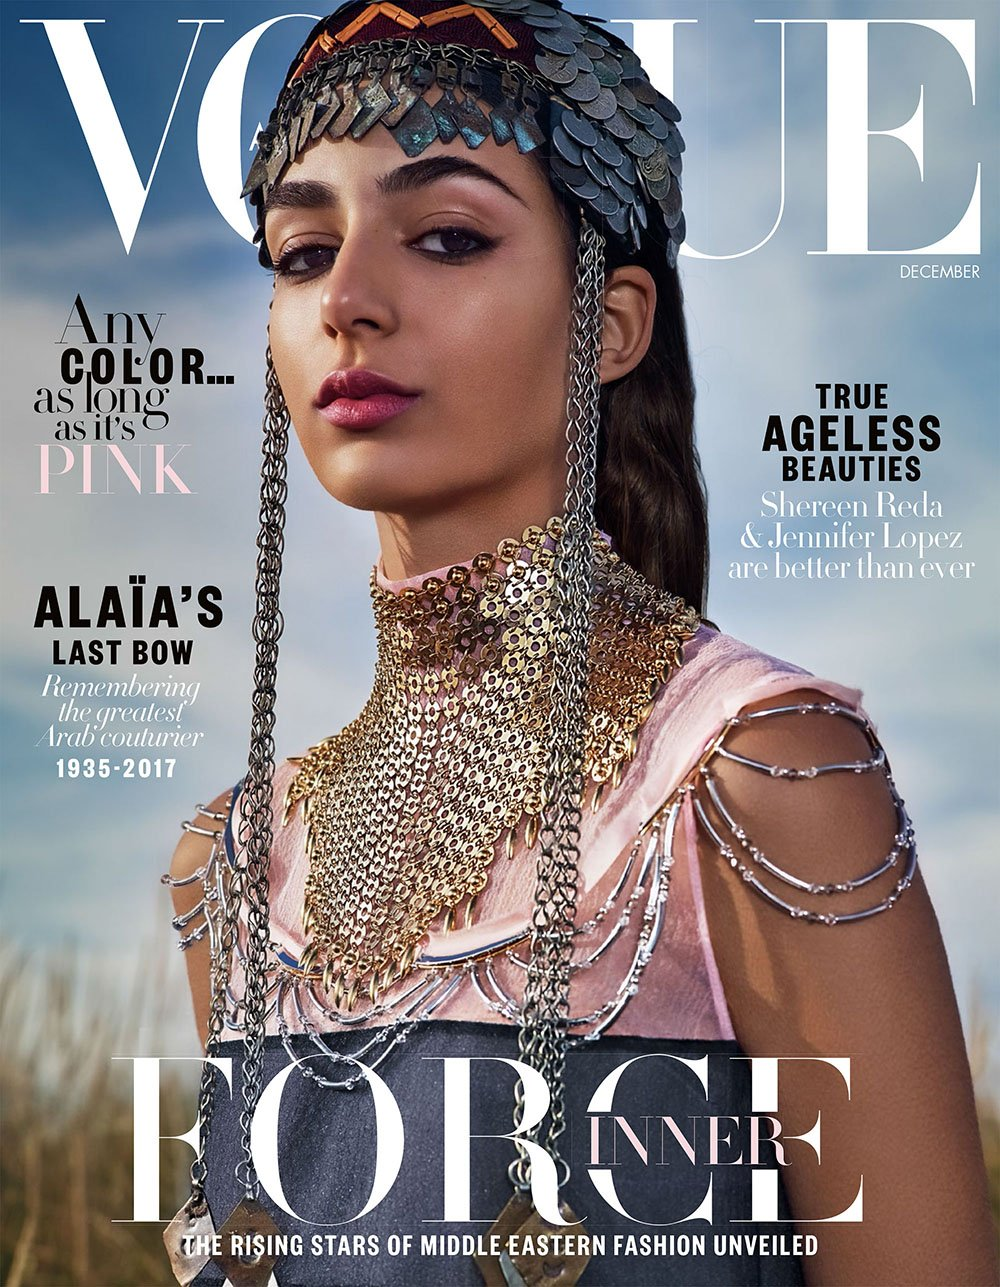 10-Vogue-Arabia-DEC-17-Binder-_ellenvonunwerth_-1.jpg